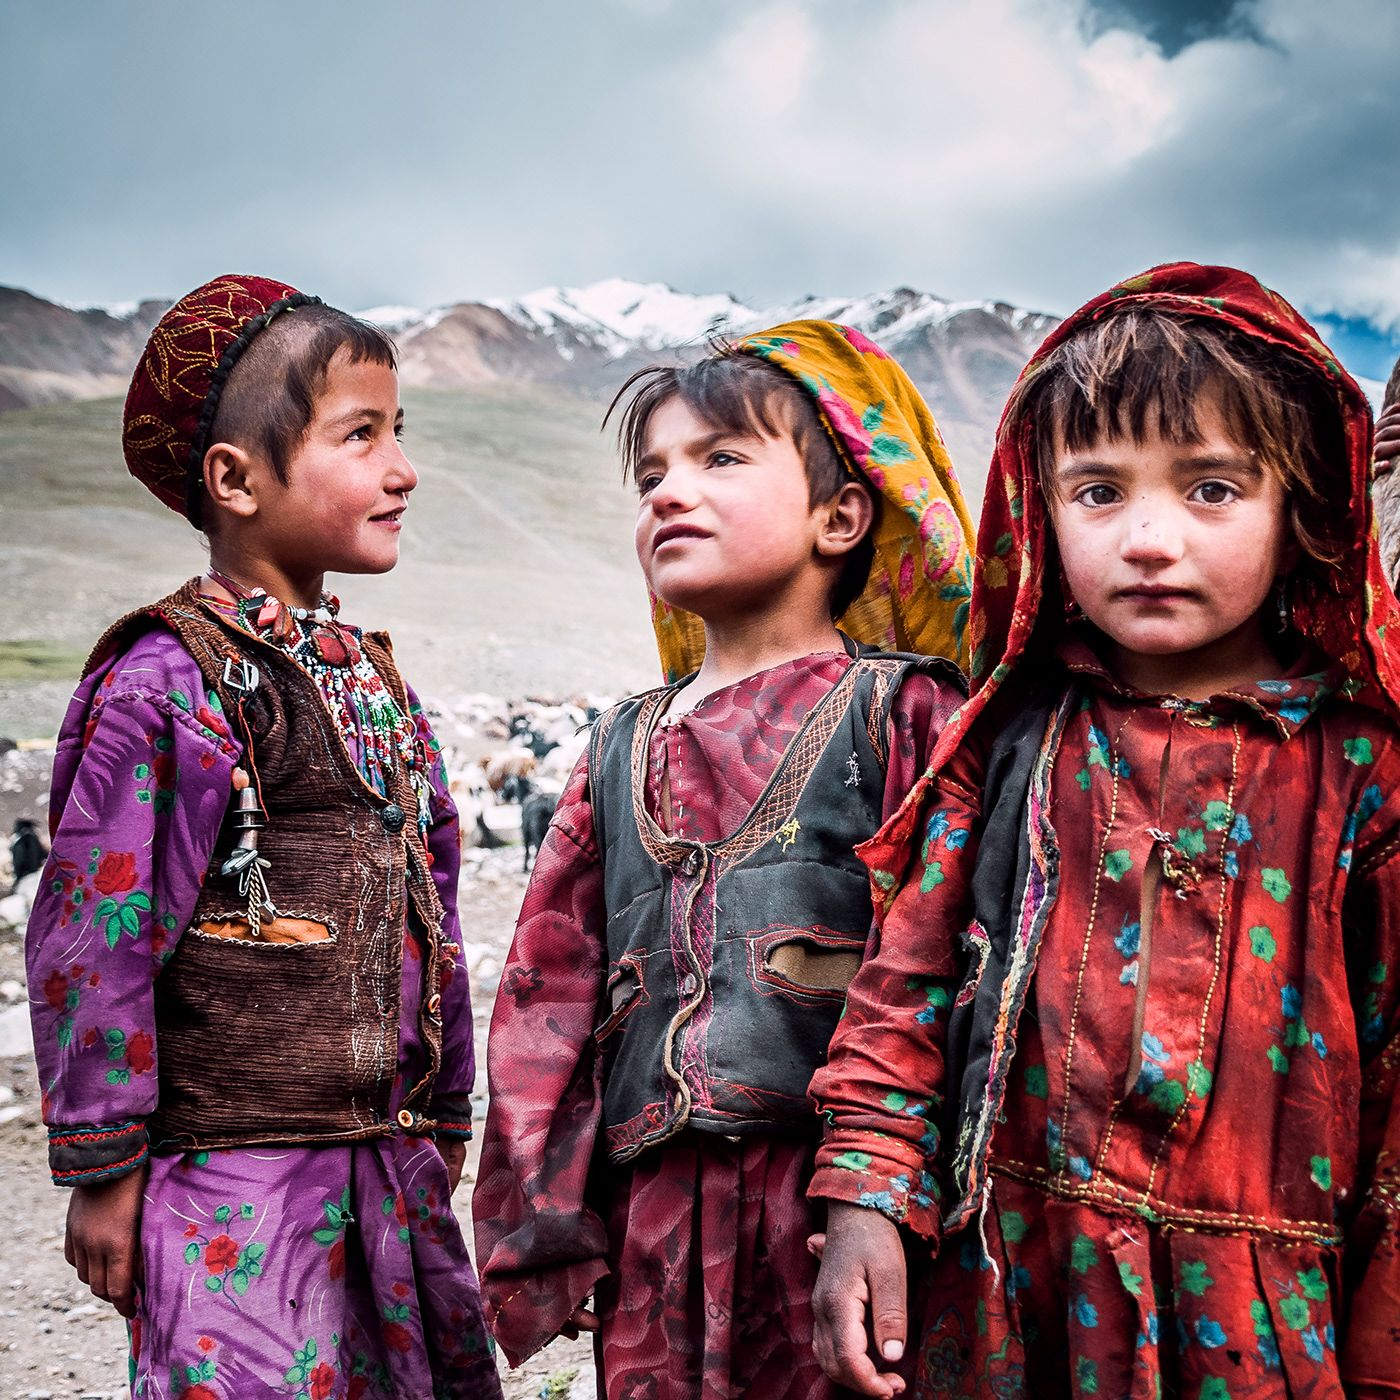 afghanistan afghan wakhan china behance culture wakhi corridor side border tajiks related local jakub precious asia central then